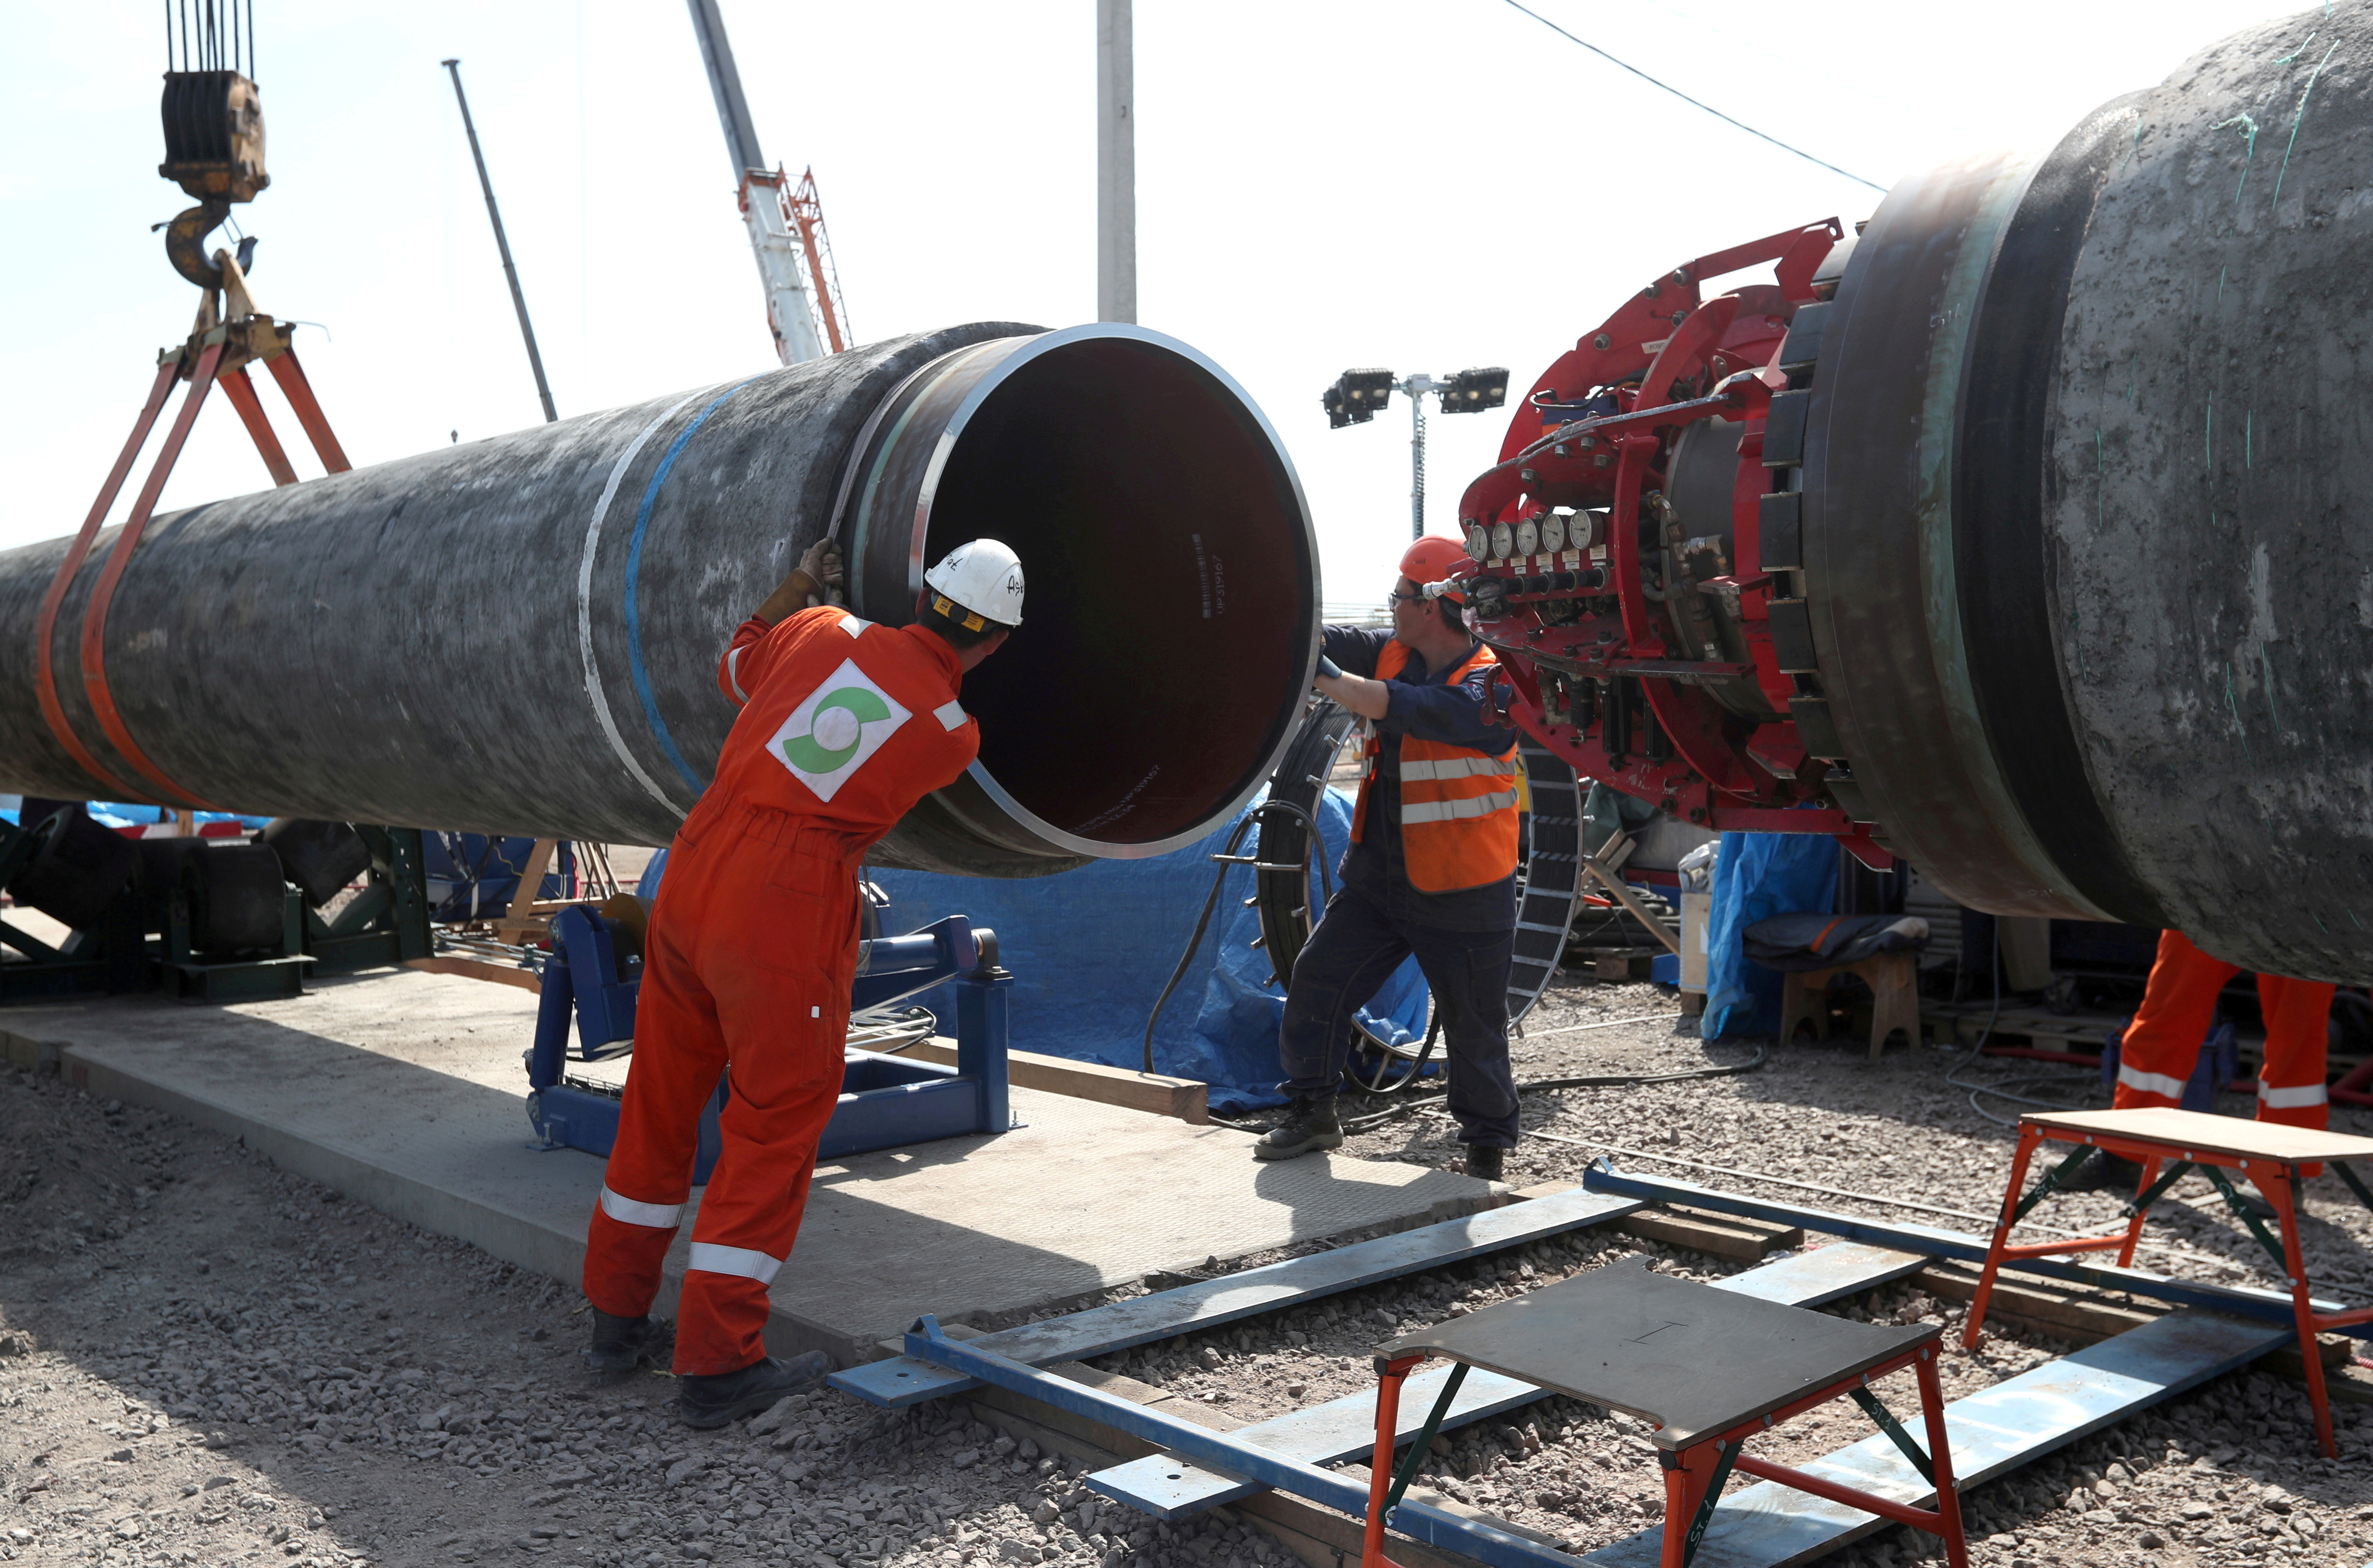 Workers are seen at theconstruction siteof the NordStream2 gas pipeline, near the town of Kingisepp, Leningrad region, Russia, June 5, 2019. REUTERS/AntonVaganov/File Photo